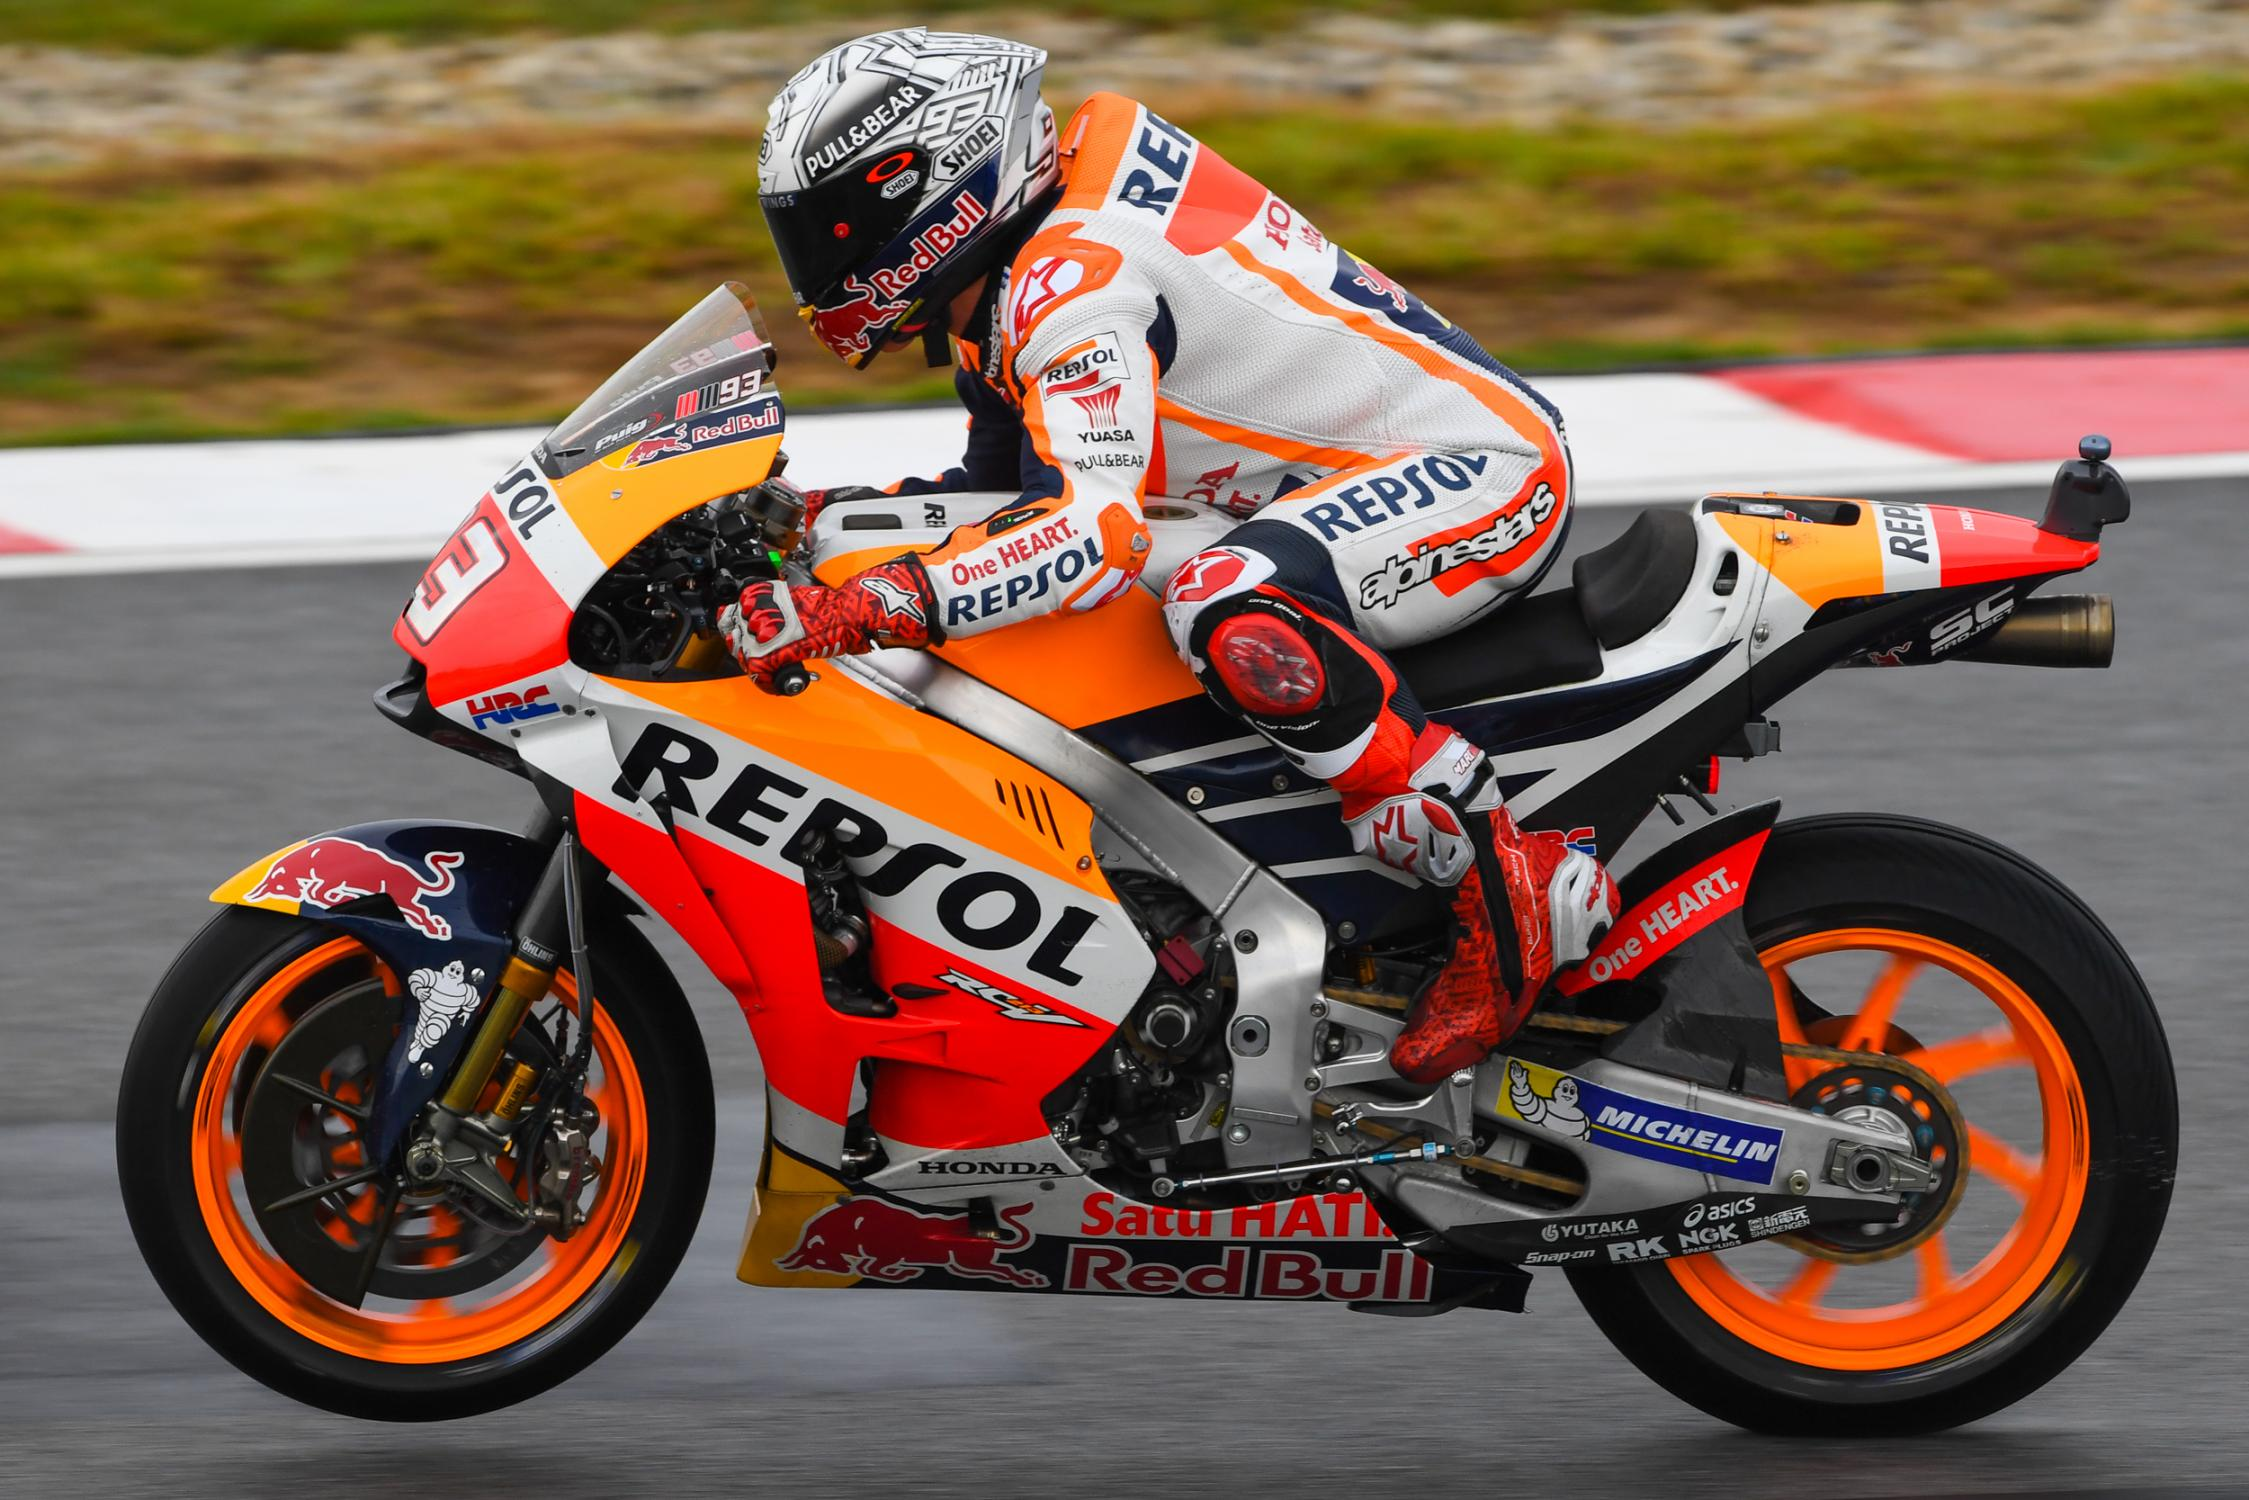 93-marc-marquez-espdsc_1648.gallery_full_top_fullscreen.jpg